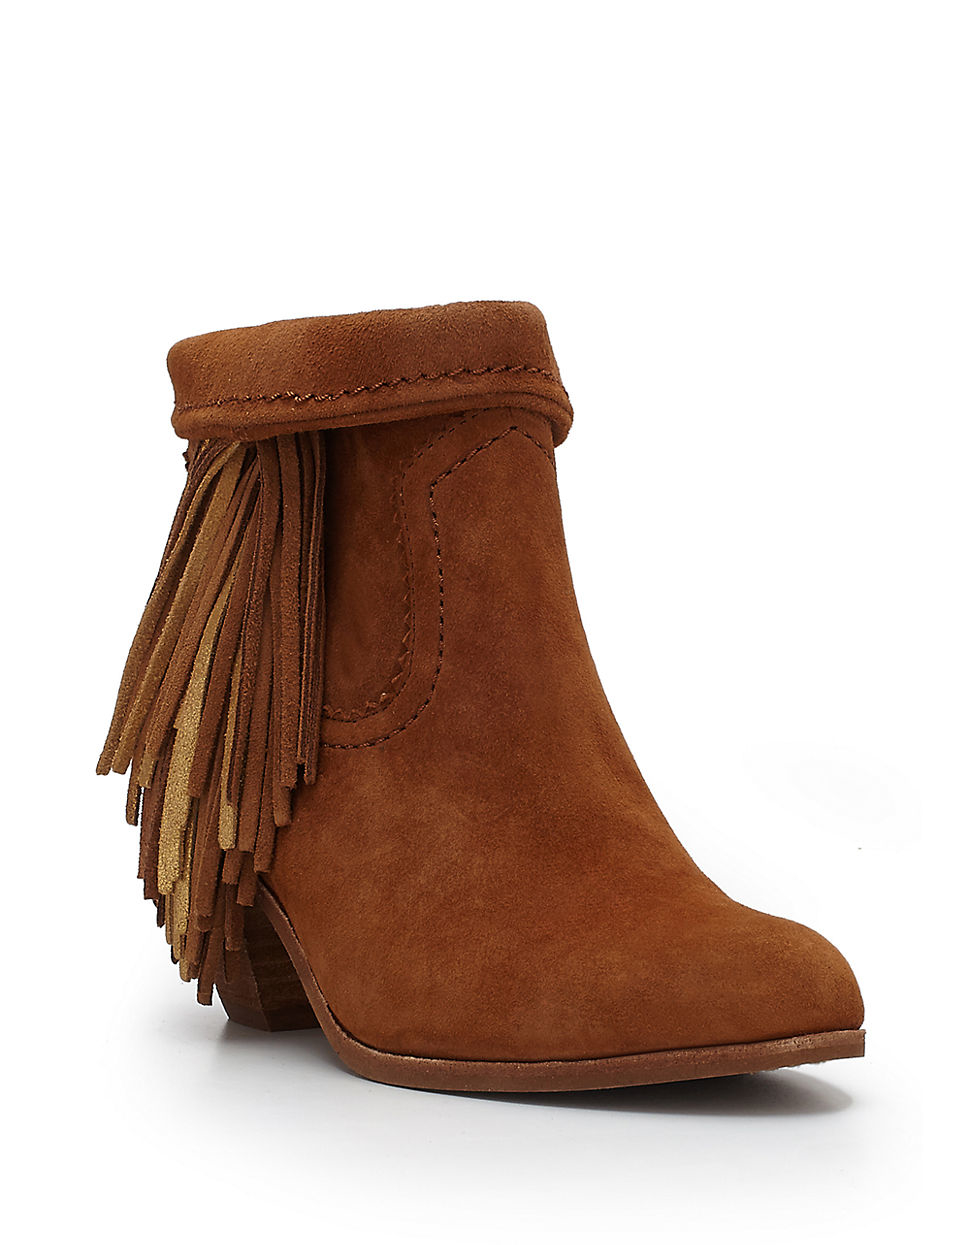 2685a7de50eccc Sam Edelman Louie Fringed Suede Ankle Boots in Brown - Lyst